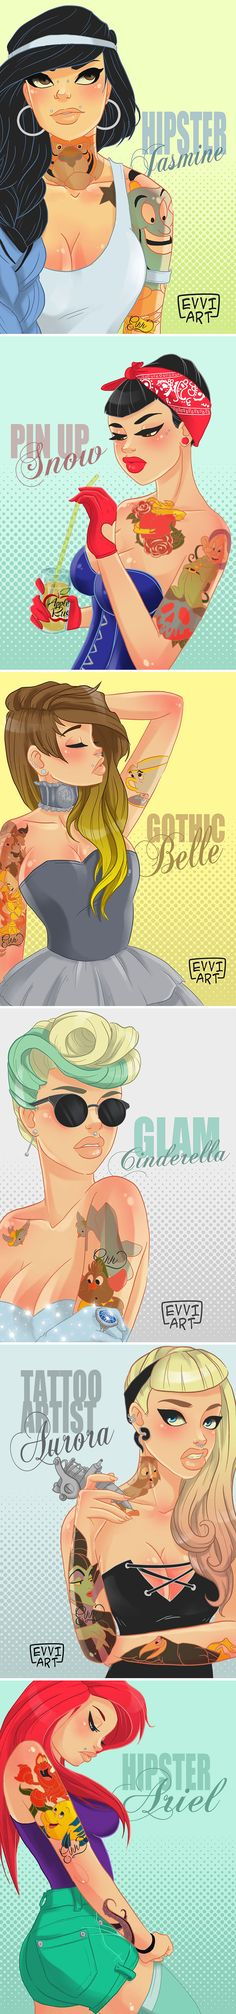 These Disney Princesses Are Cooler Than You